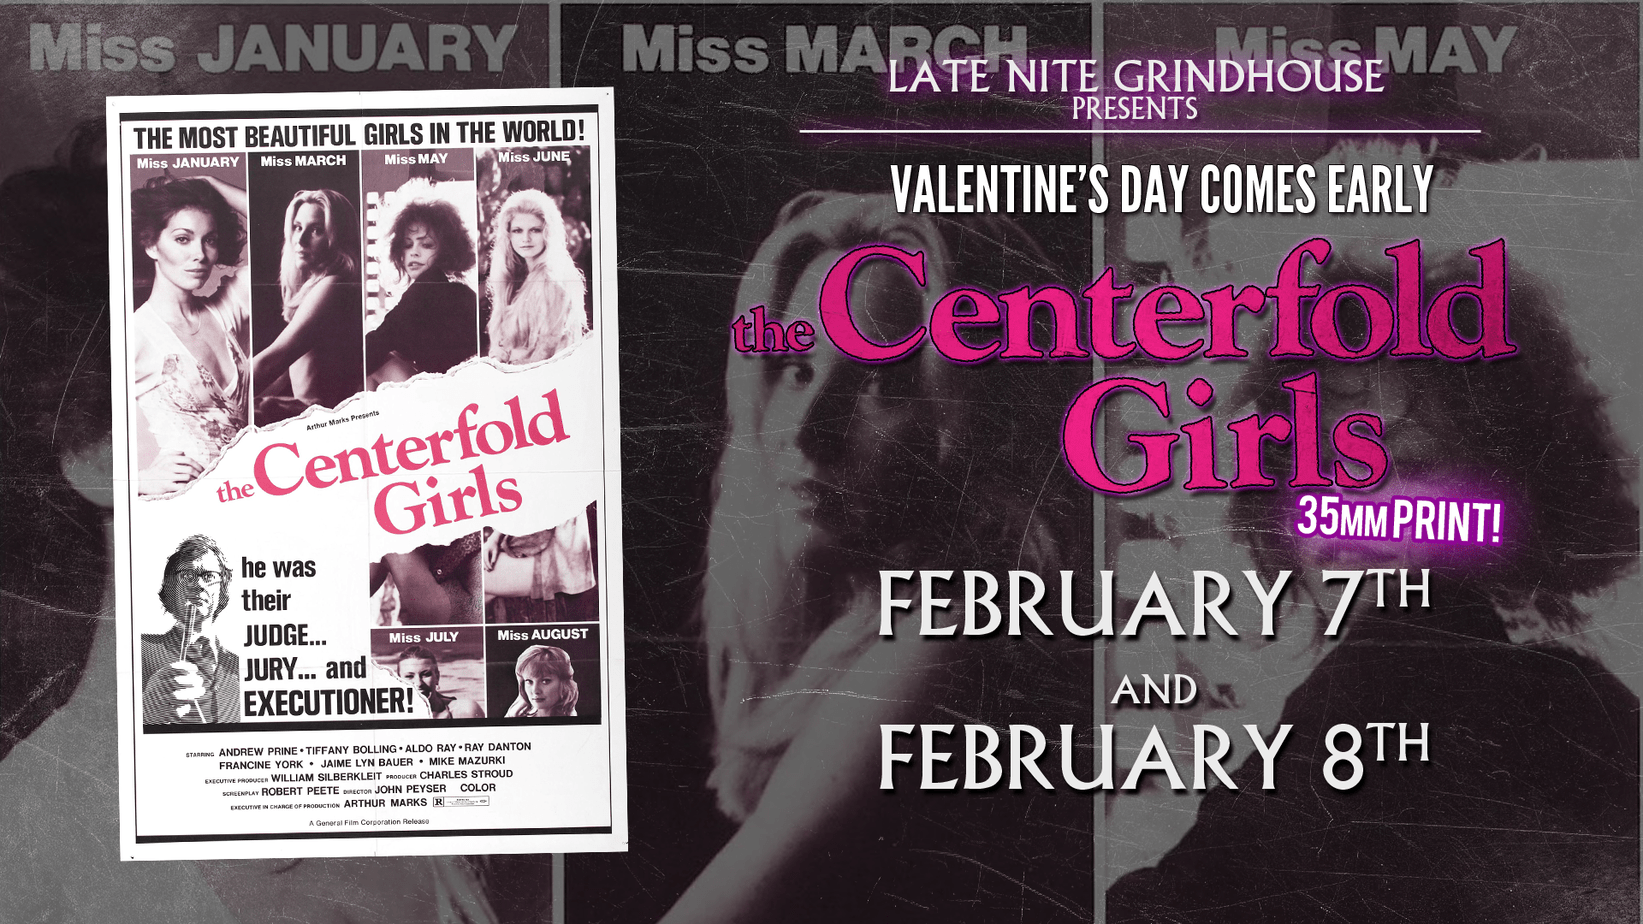 Celebrate Valentines Day Prematurely With The Centerfold Girls At Late Nite Grindhouse